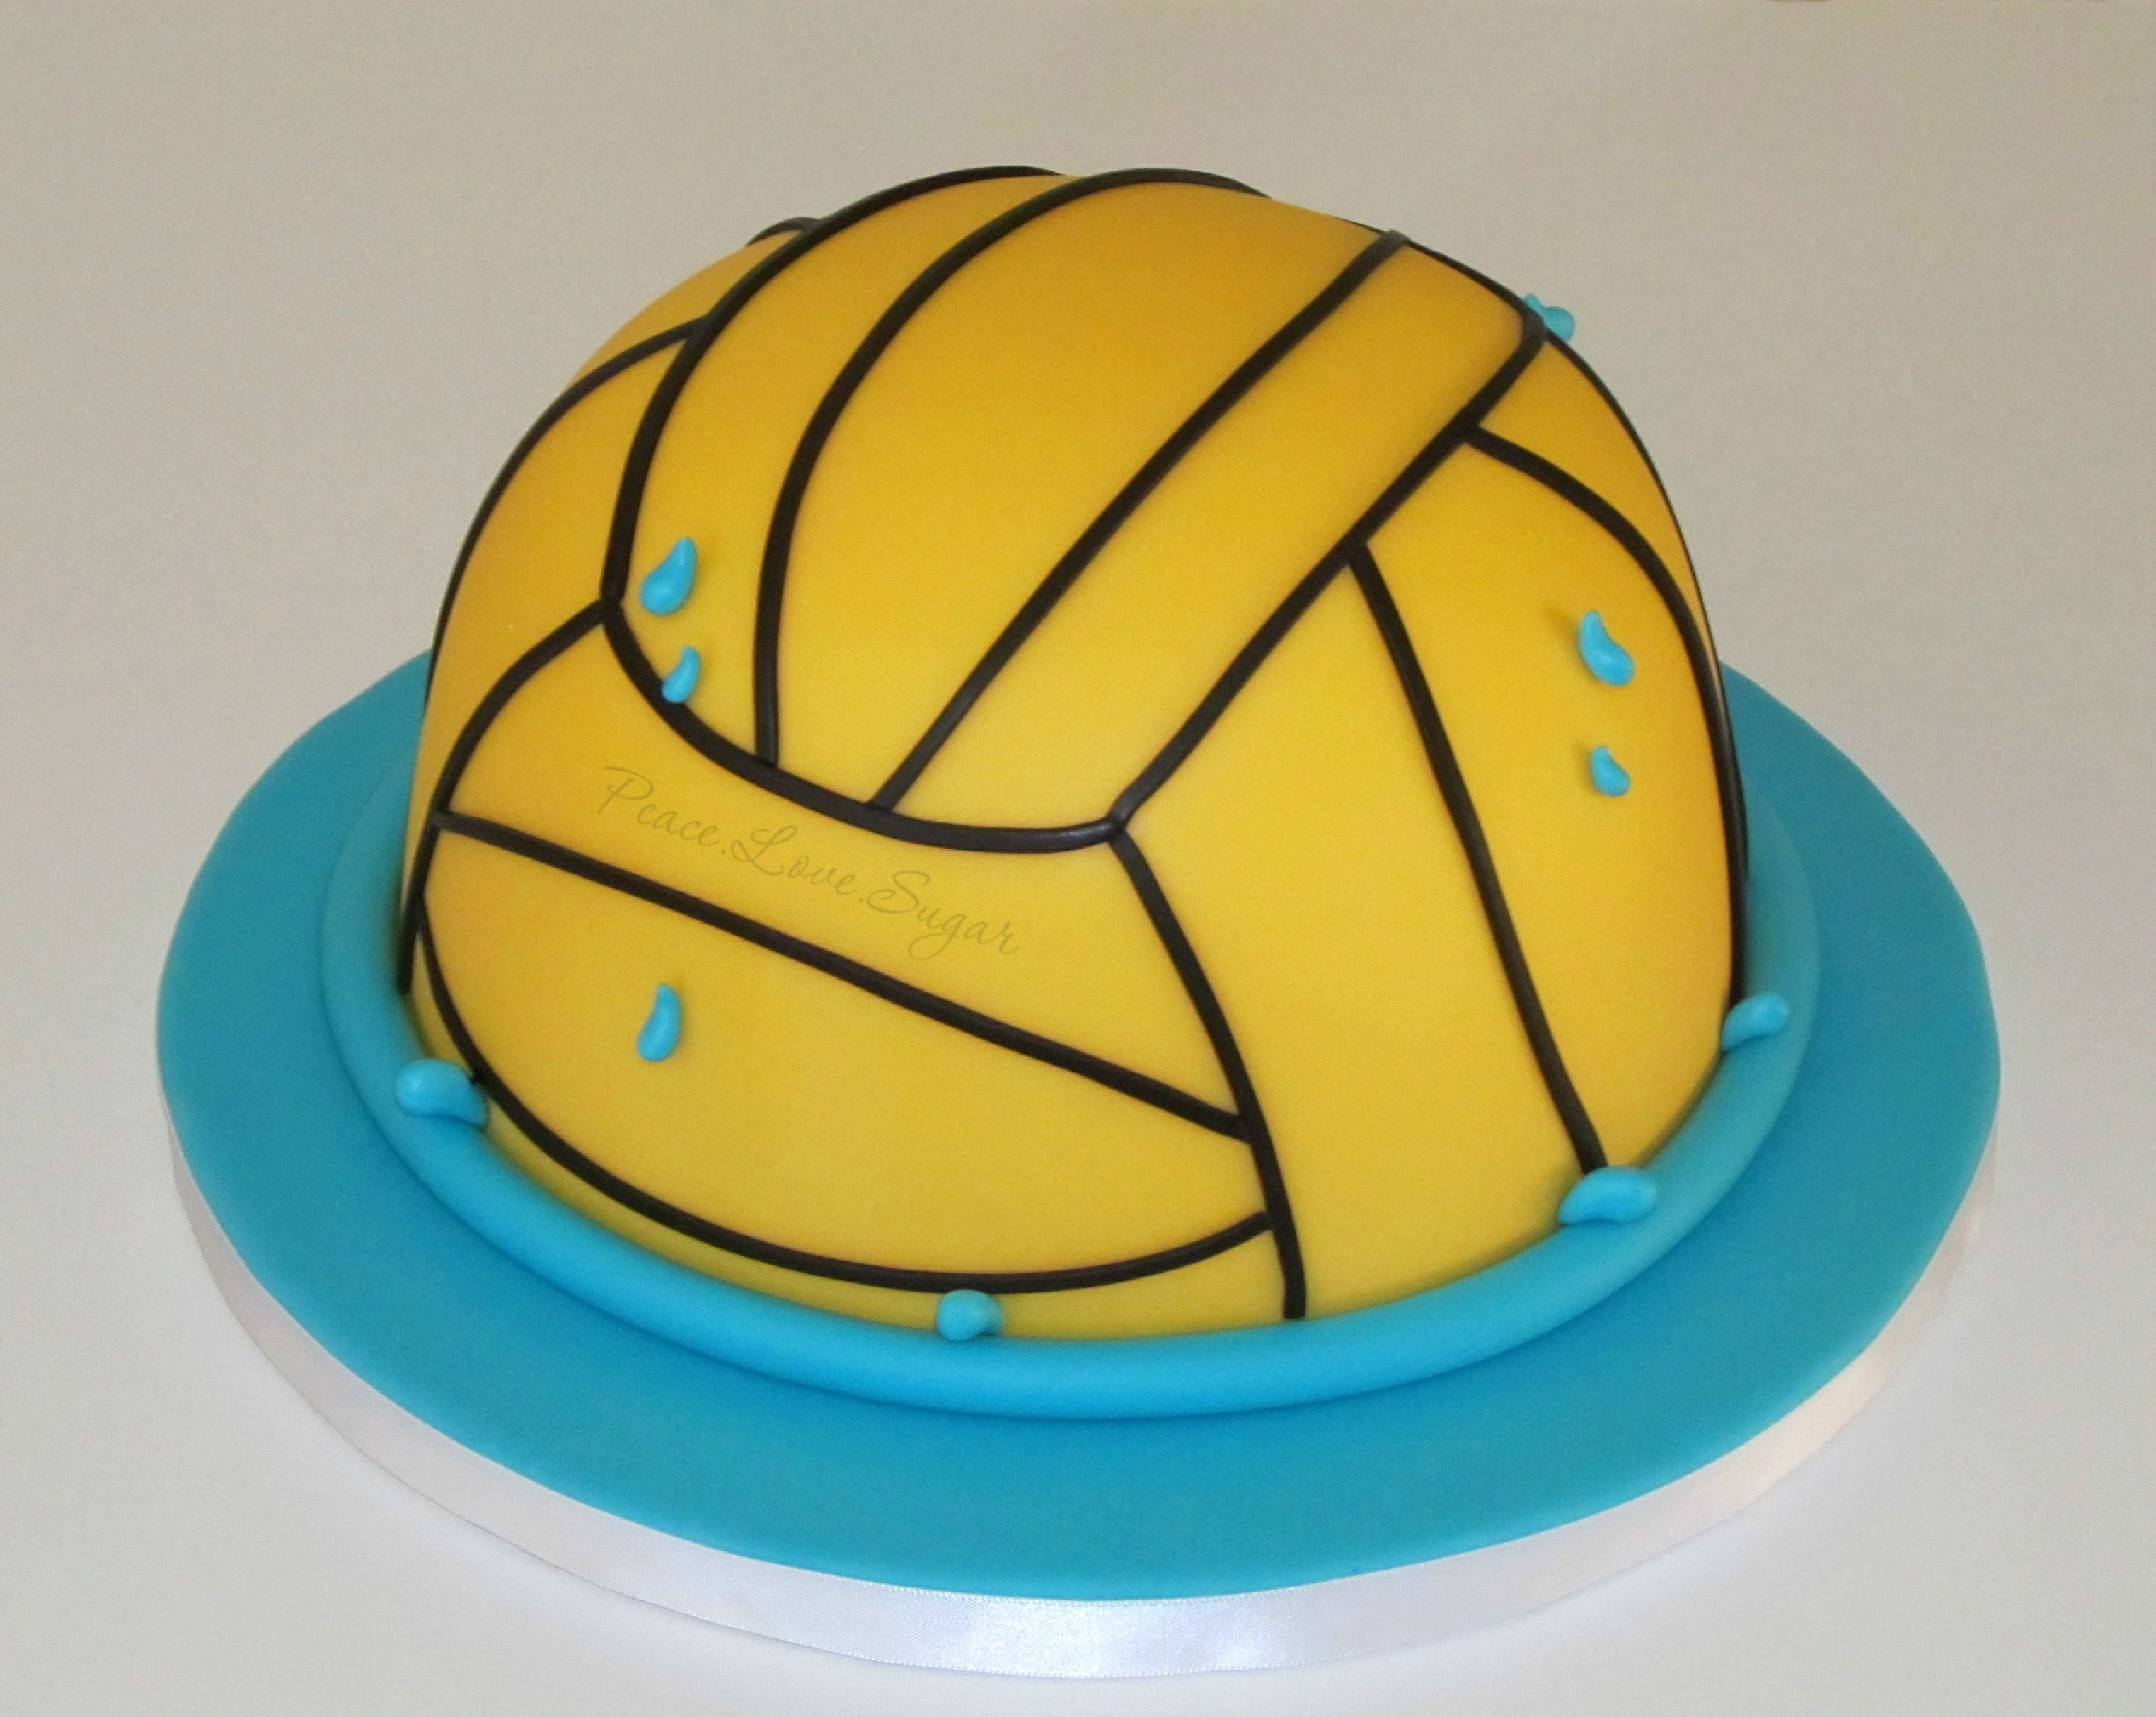 Water Polo Ball Cake Peace Love Sugar Https Www Facebook Com Pages Peacelovesugar 107504169339809 Water Polo Graduation Cakes Cake